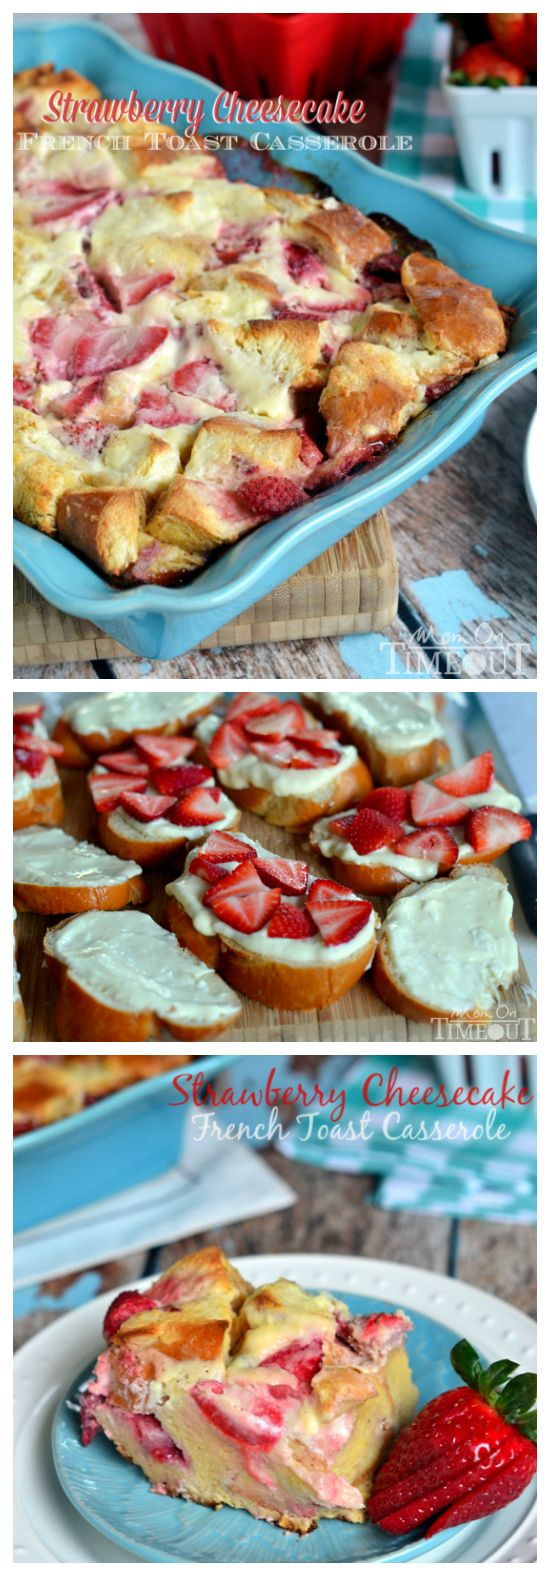 Take the hassle out of breakfast with this Overnight Strawberry Cheesecake French Toast Casserole! Enjoy t